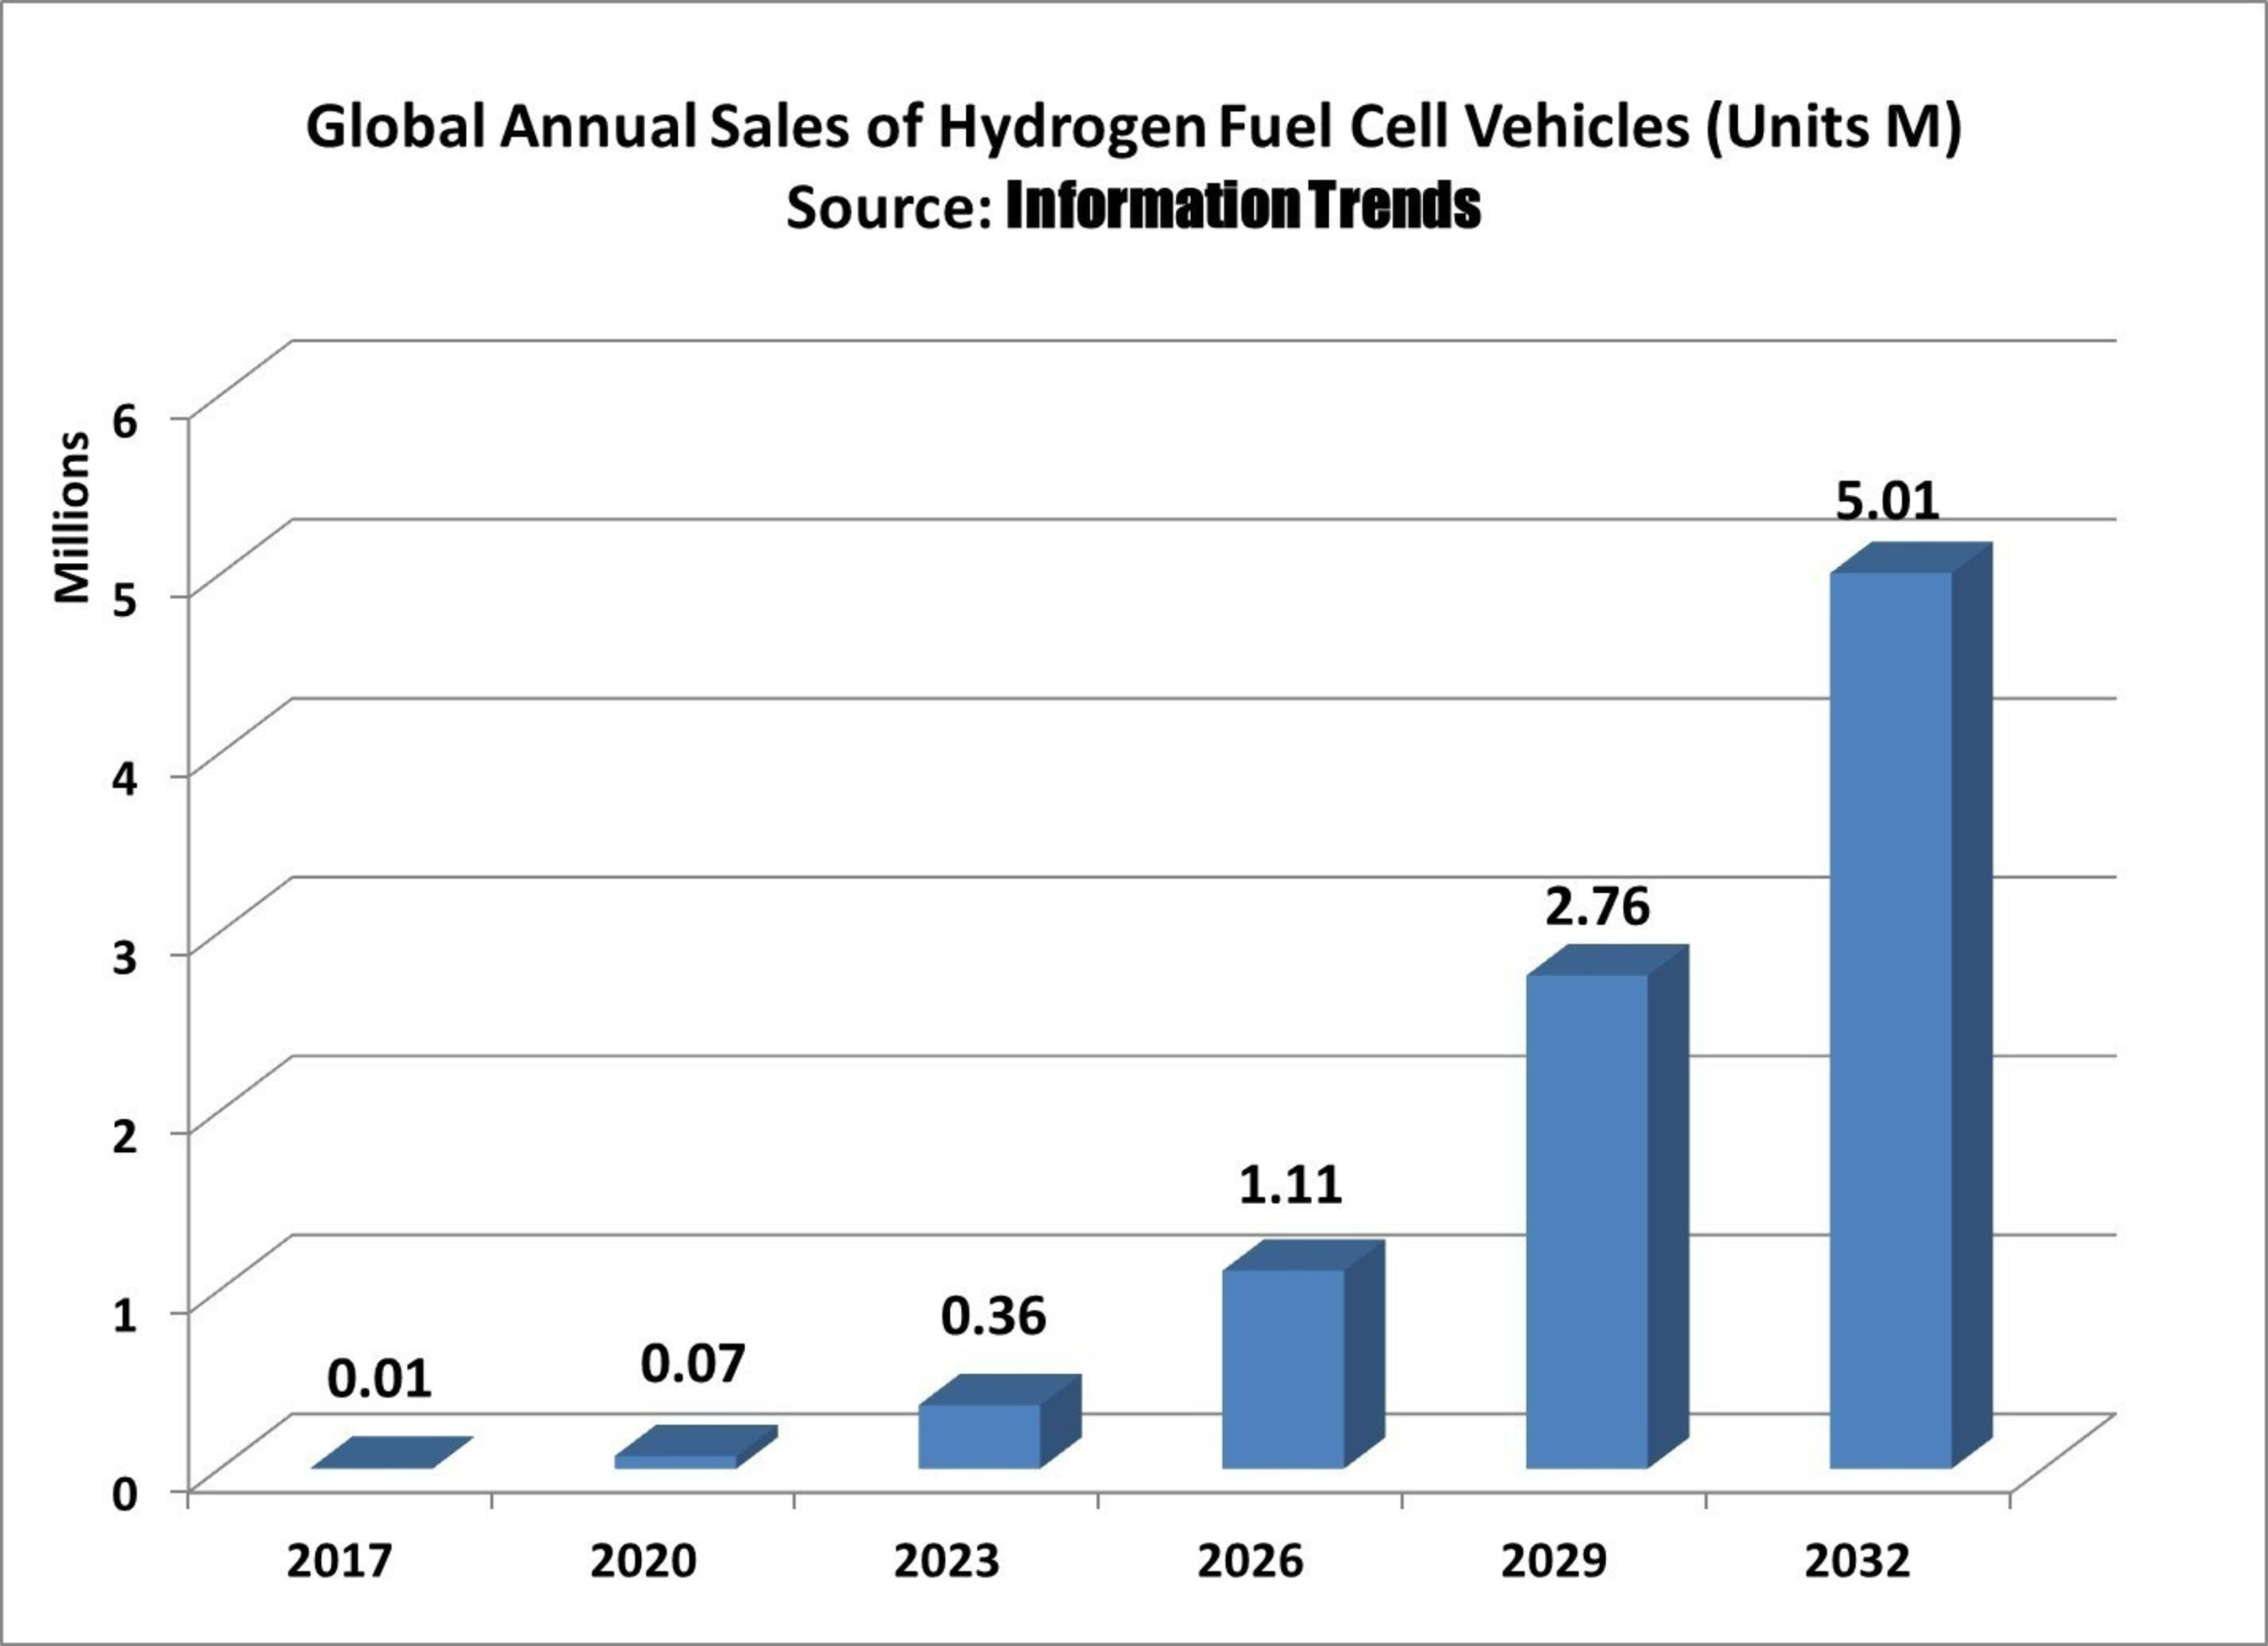 Hydrogen Fuel Cell Vehicles are Future of the Automobile says